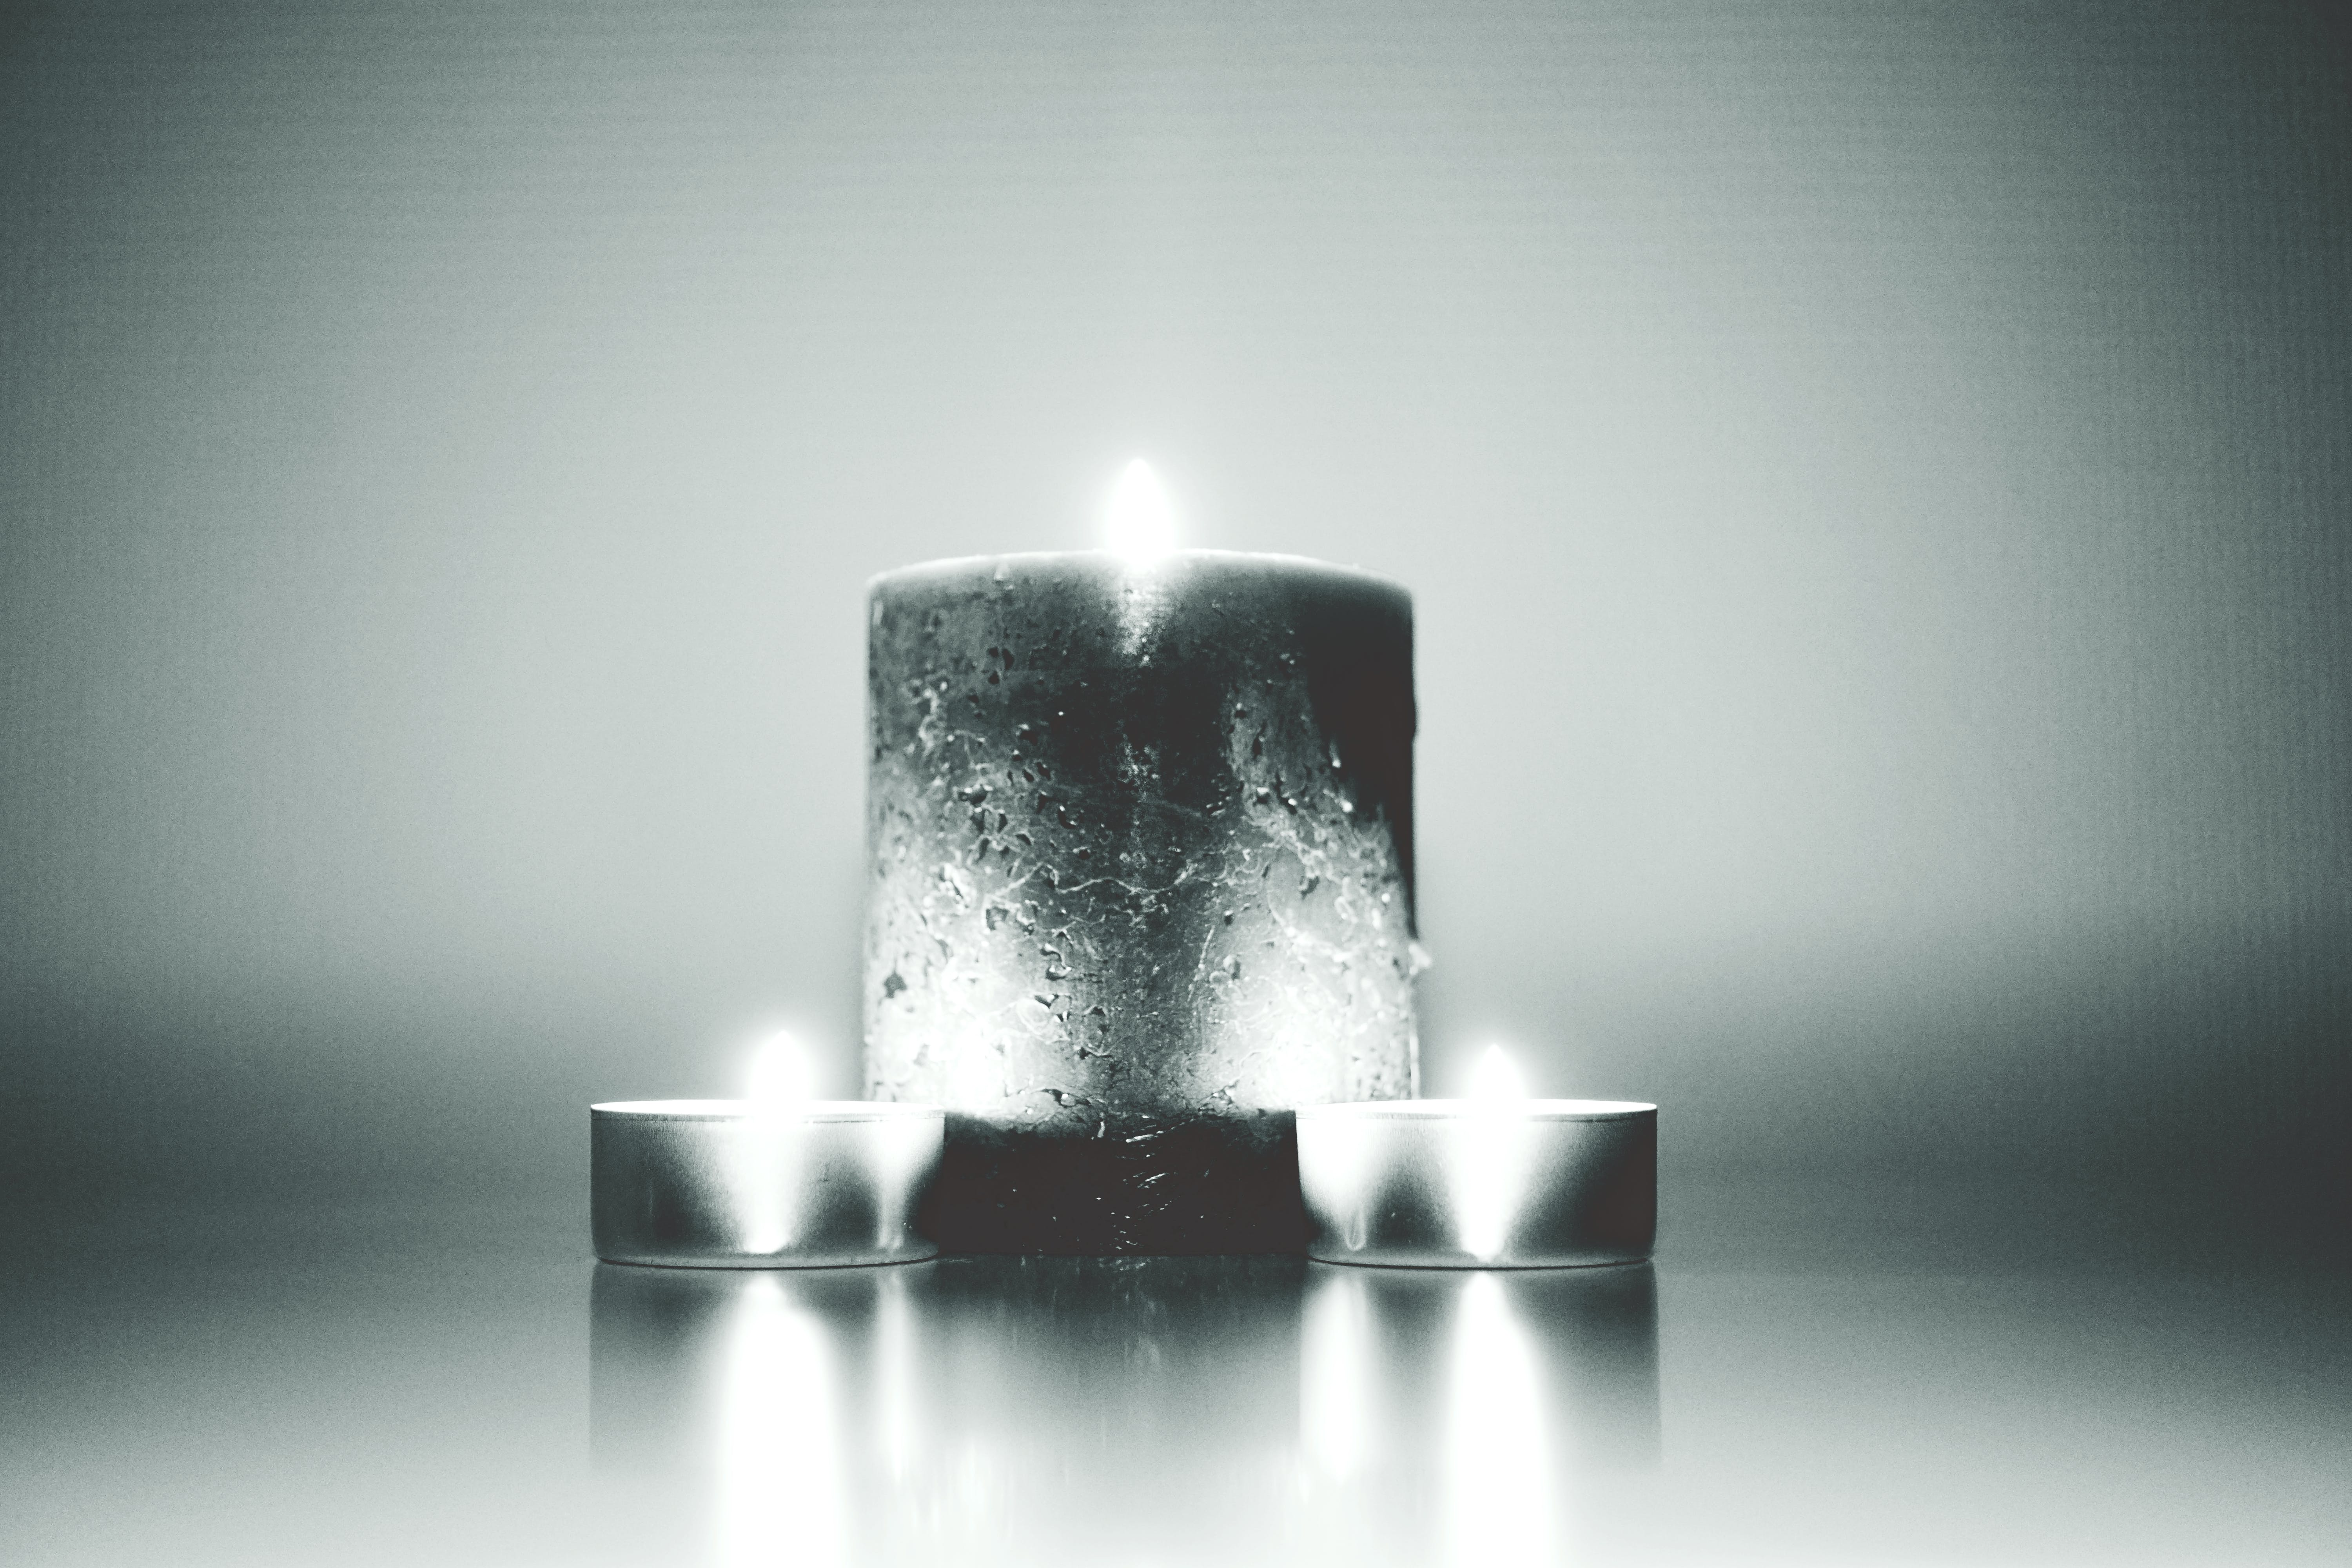 black-and-white, blur, candles